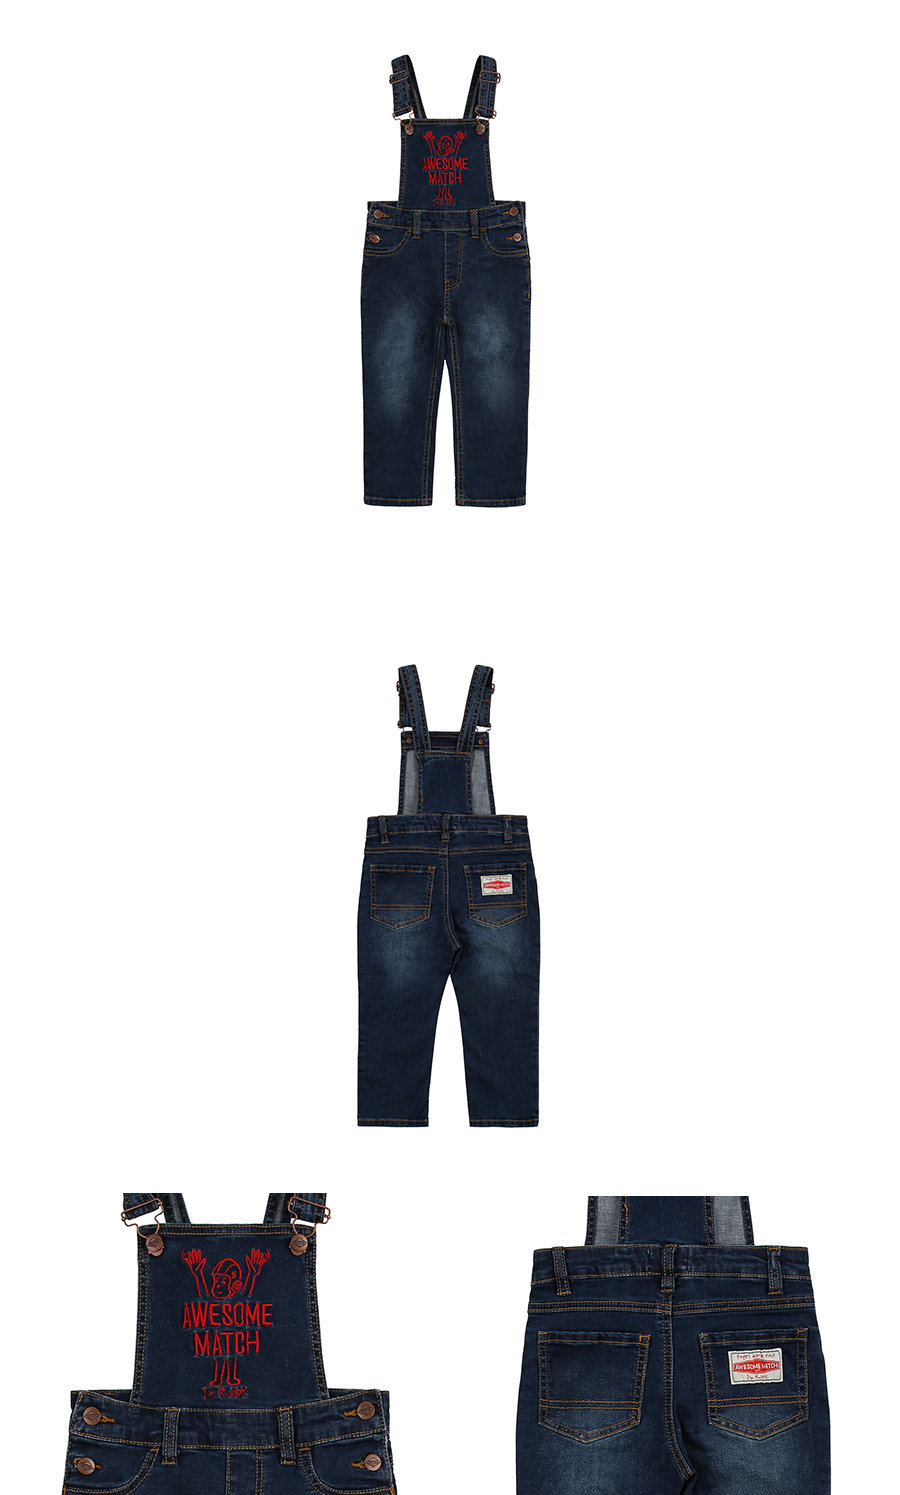 Awesome match embroidery denim overall 상세 이미지